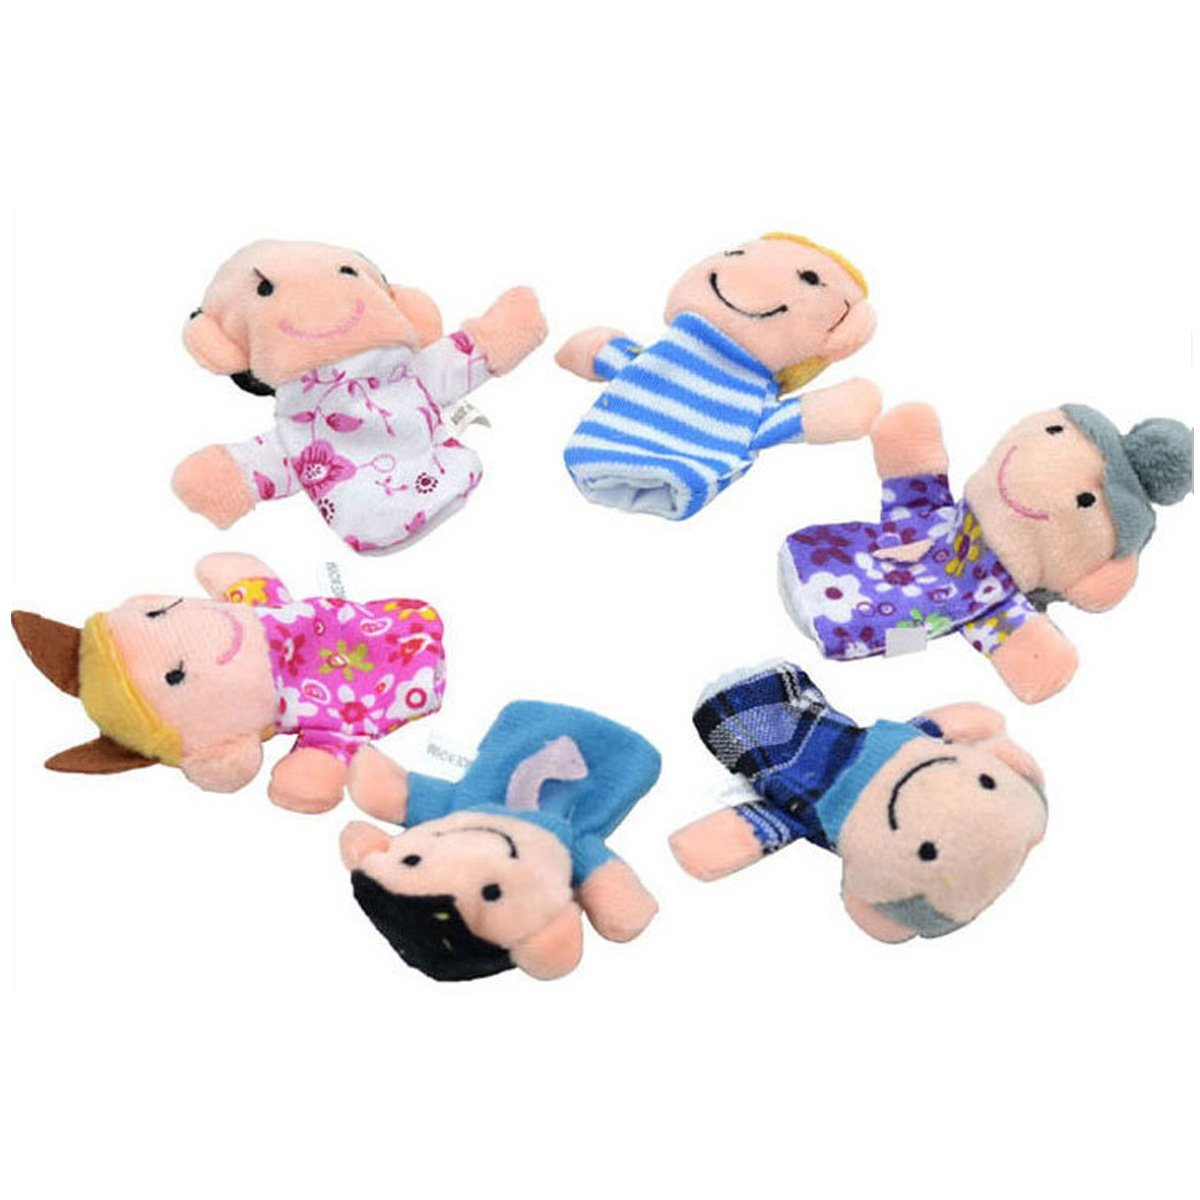 Genluna Mini Grandparents, Mom & Dad, Brother & Sister Family Style Finger Puppets for Children, Shows, Playtime, Schools - 6 Piece 7cm